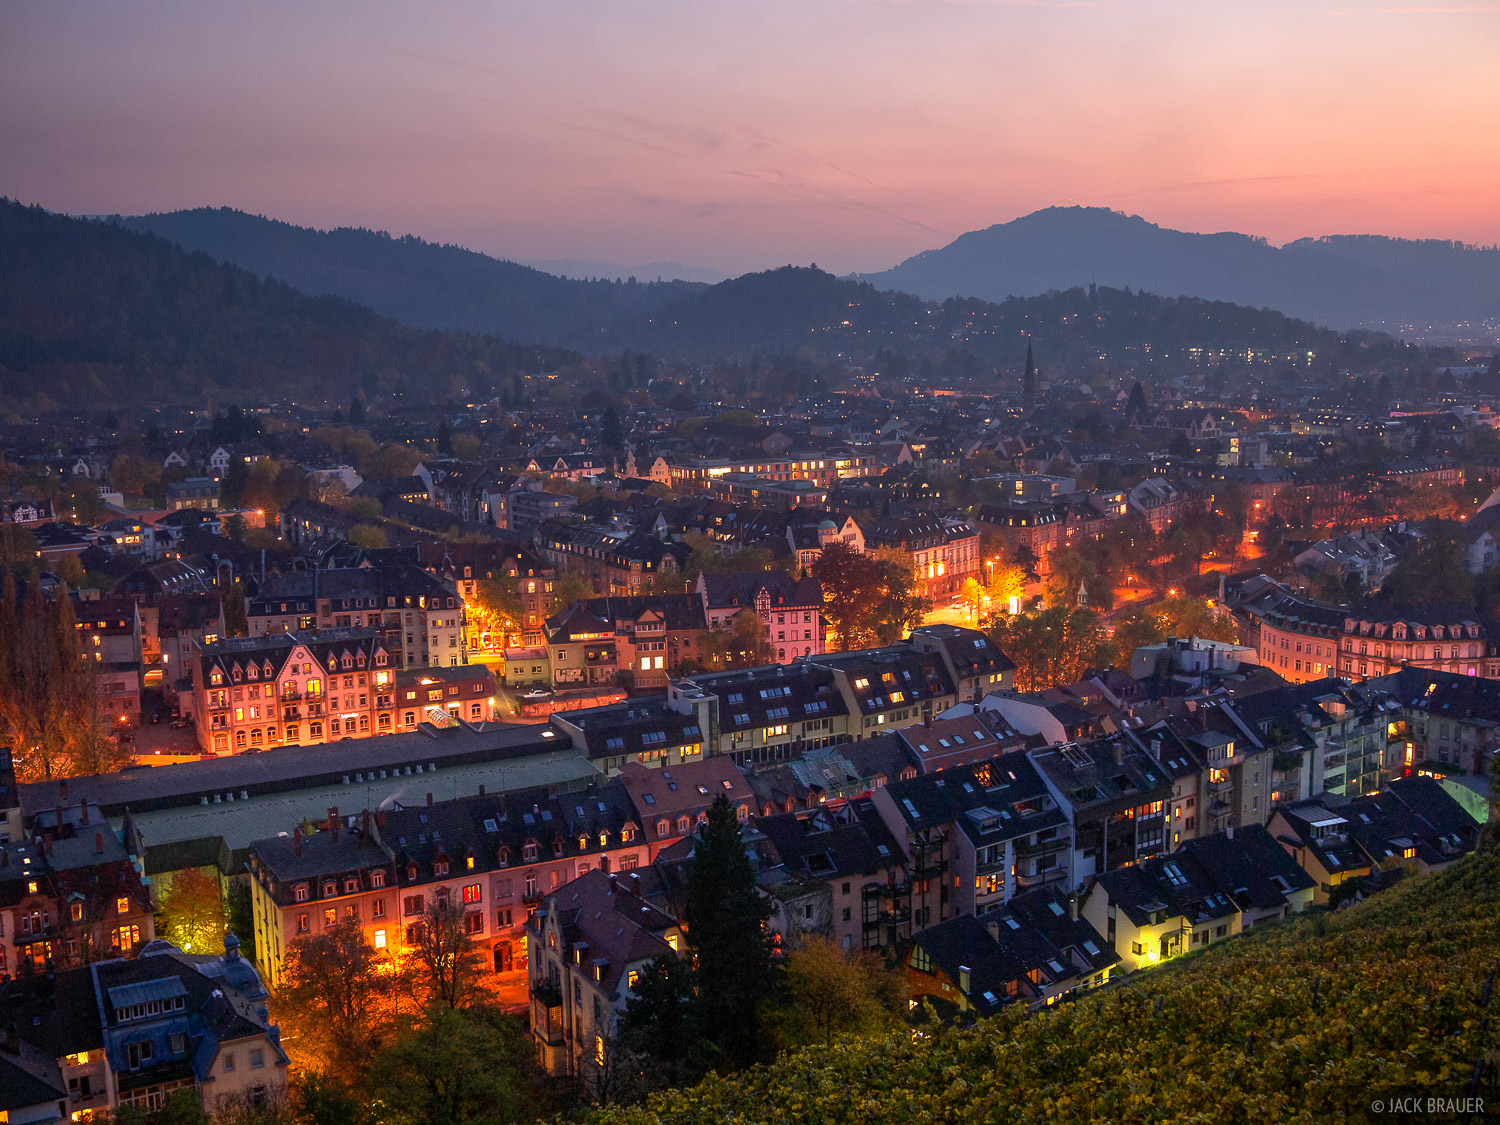 Pink dusk light over the city lights of Freiburg, Germany.